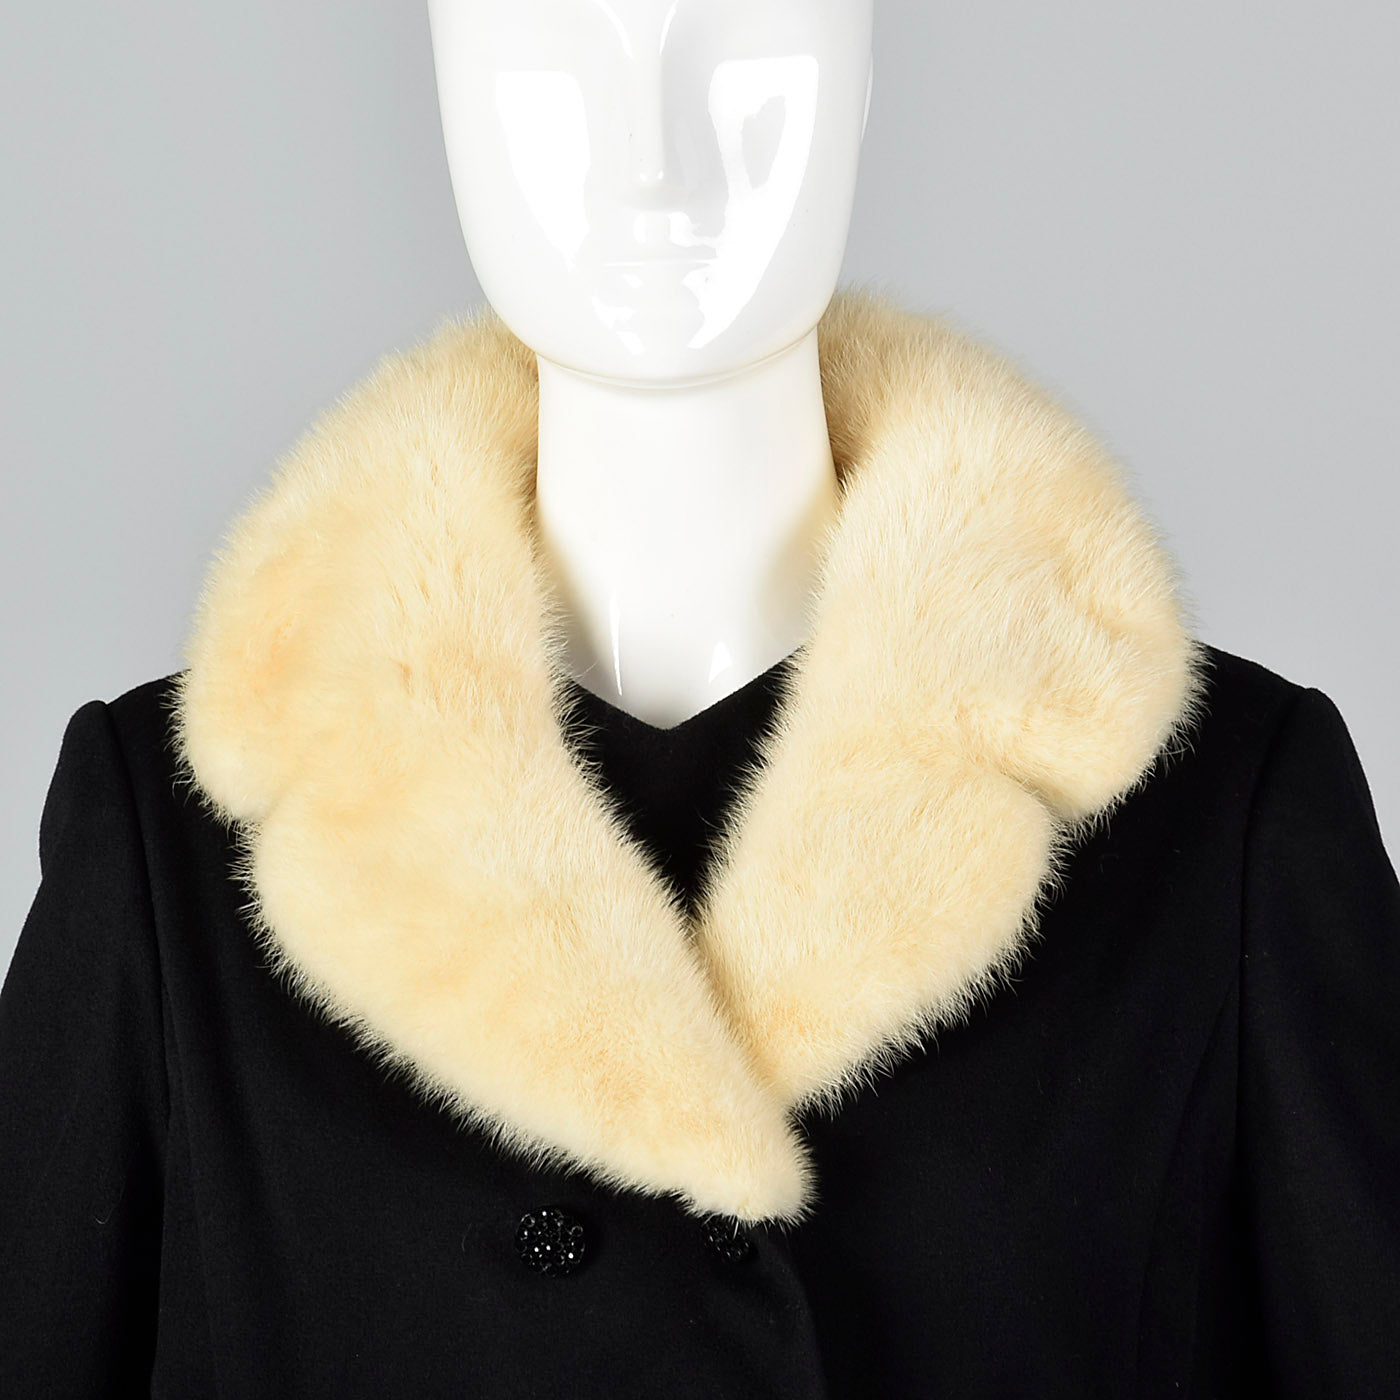 1960s Wool Shift Dress with Mink Fur Lapel Jacket